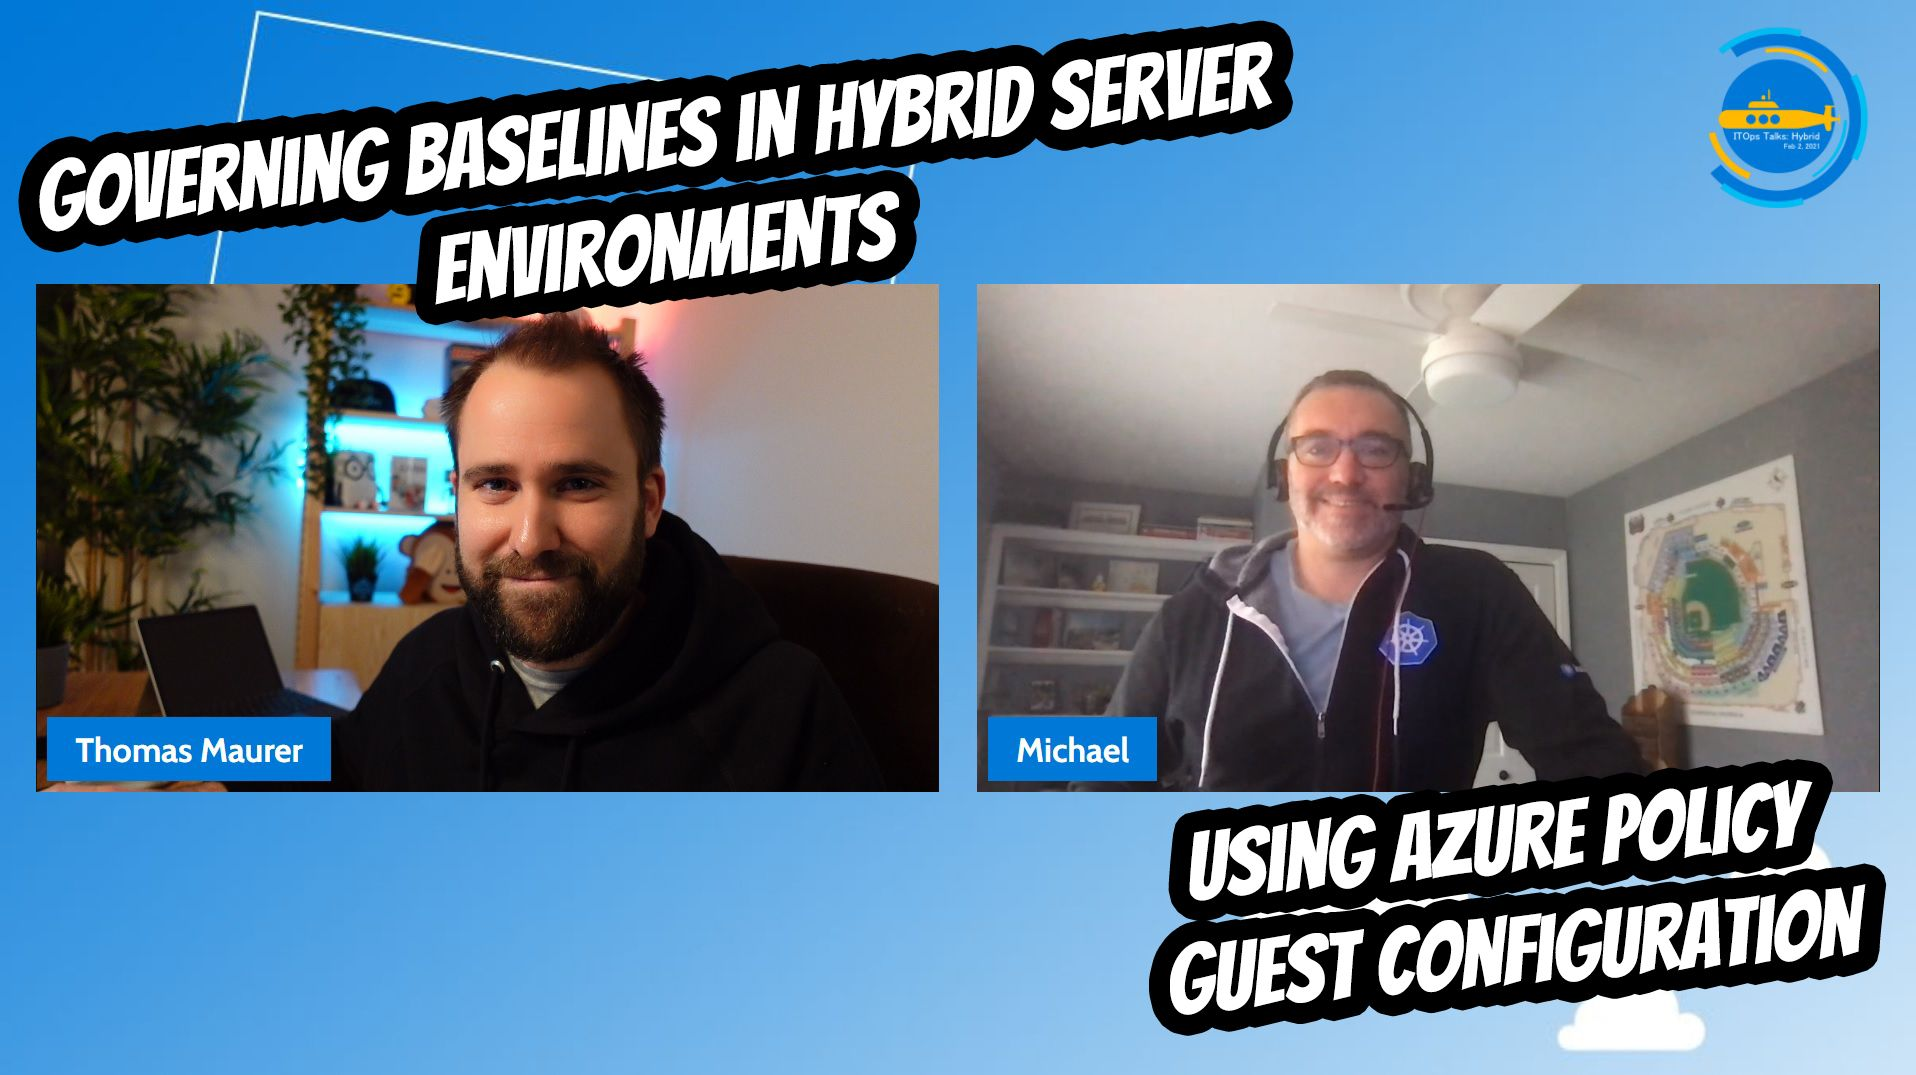 OPS114: Governing baselines in hybrid server environments using Azure Policy Guest Configuration